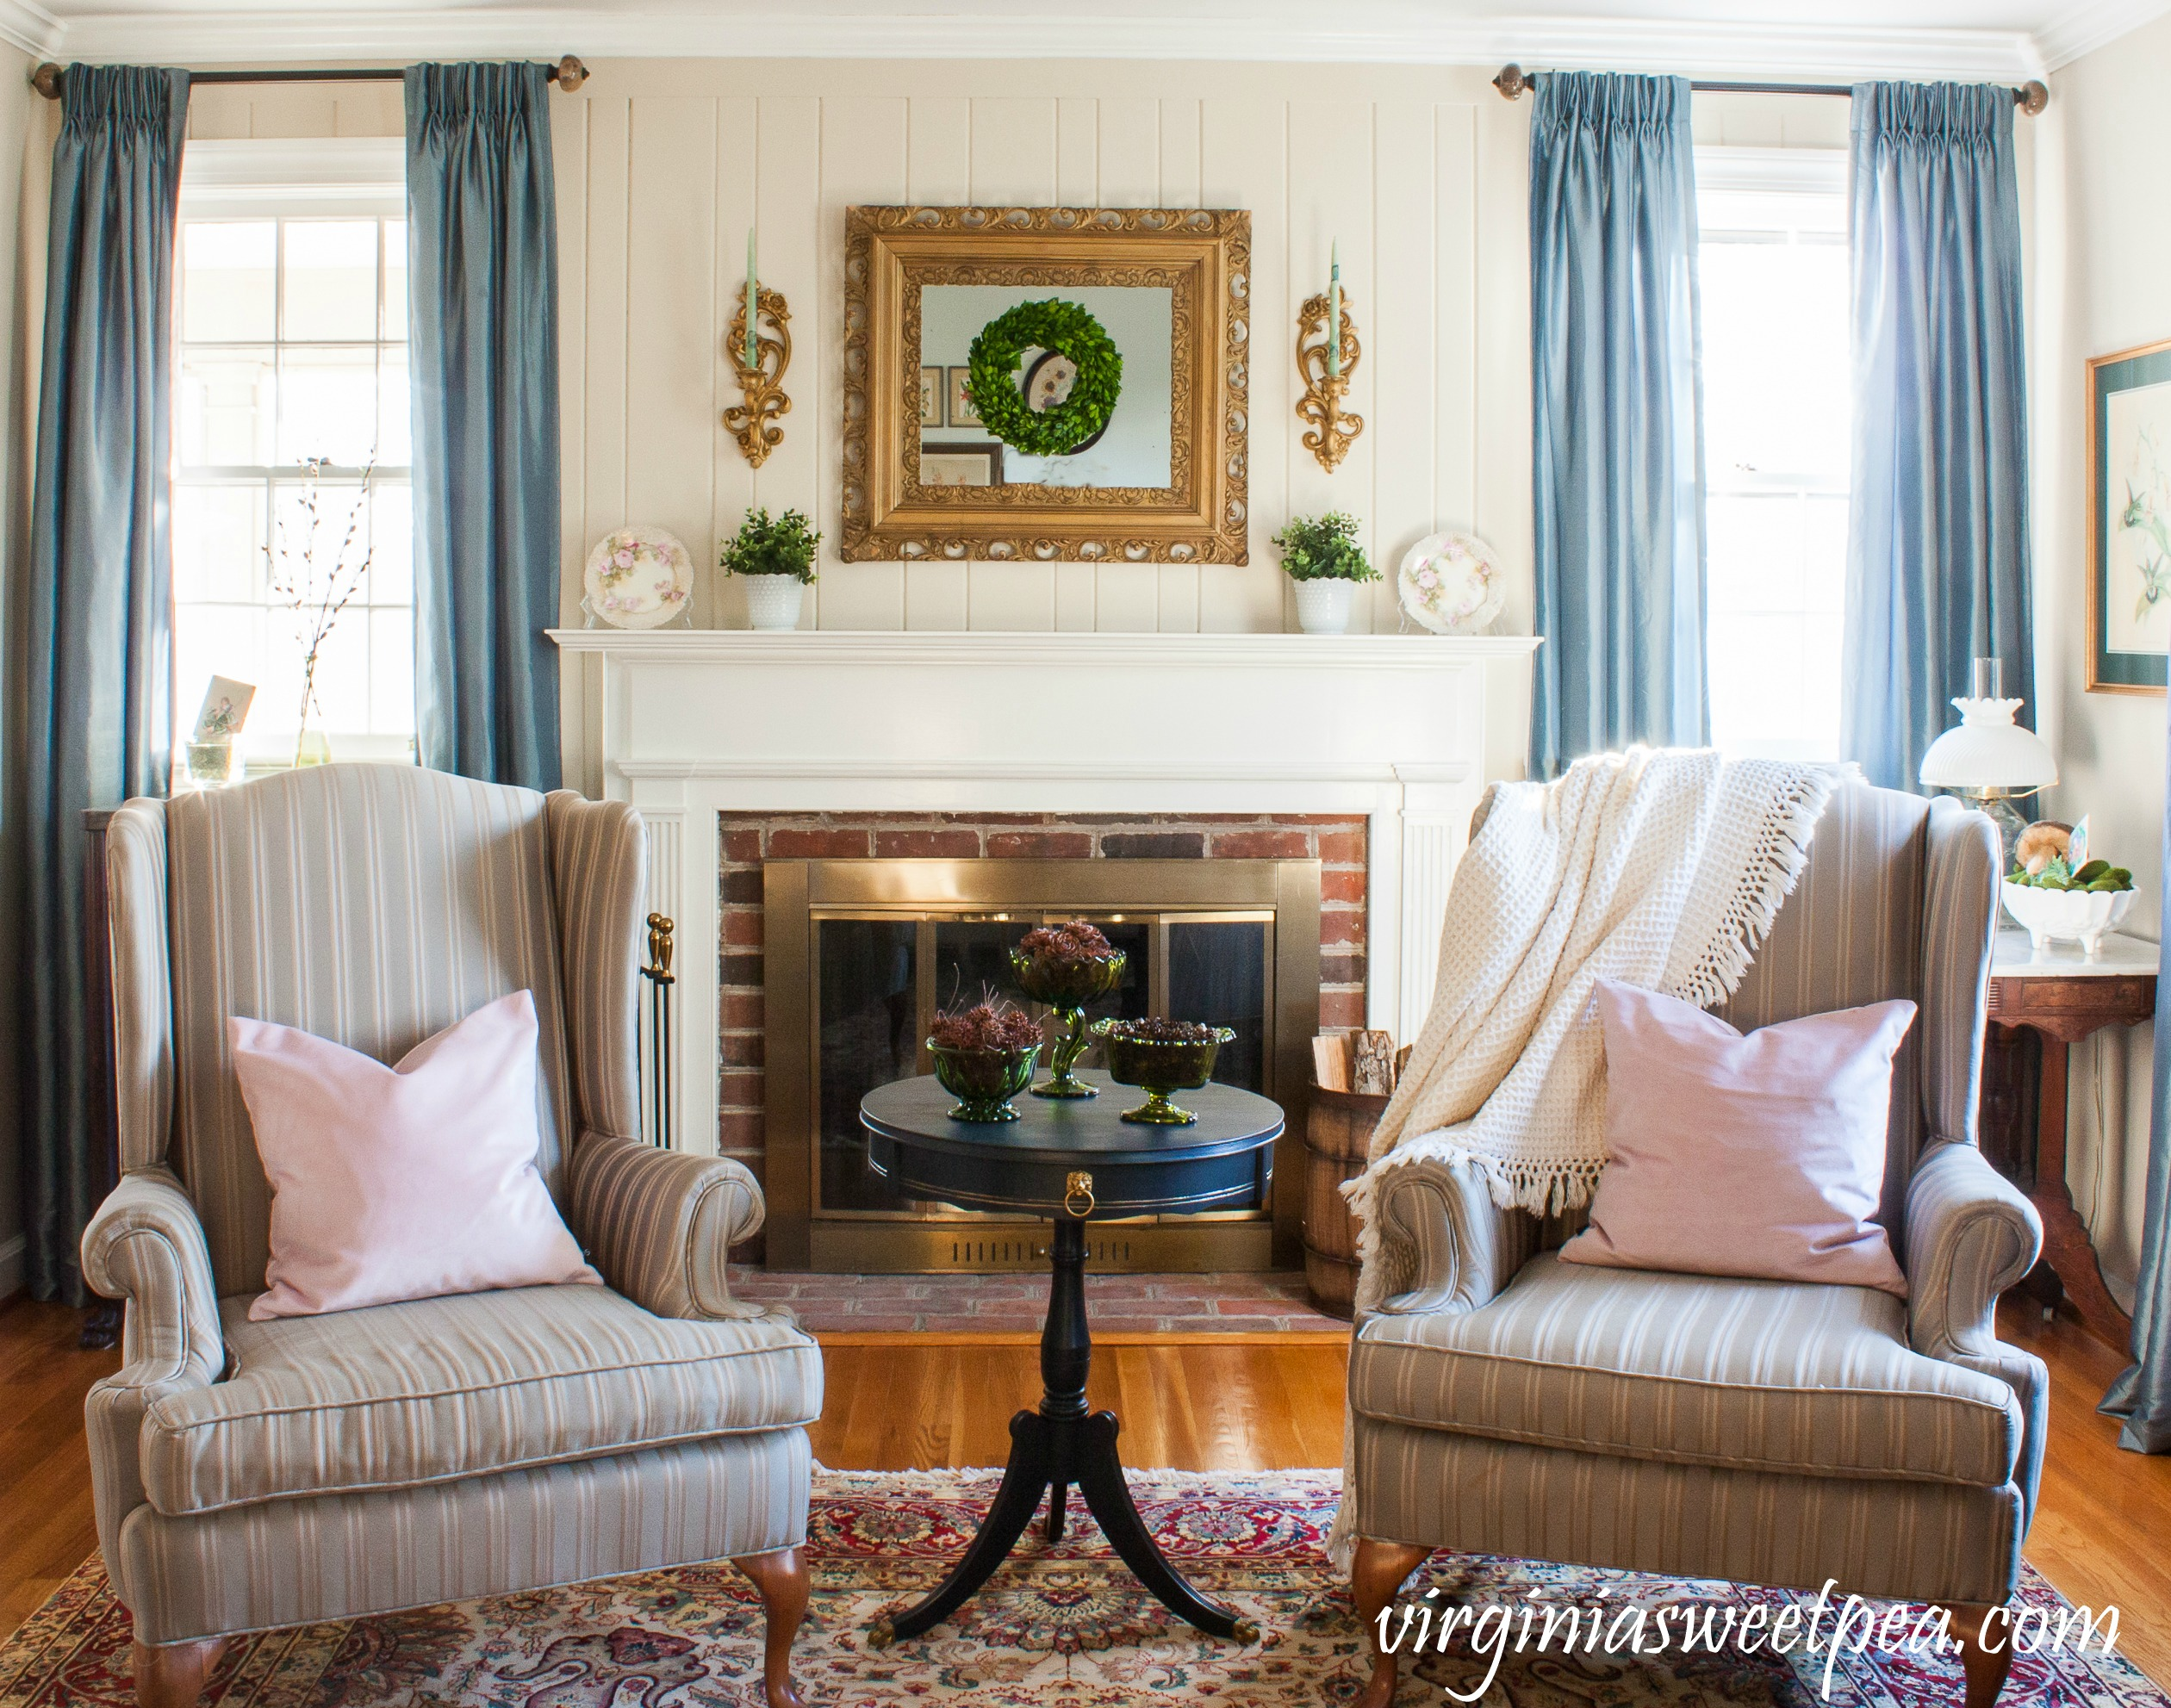 Decorate for early spring and St. Patrick's Day using decor that is green and vintage. #vintagestpatricksday